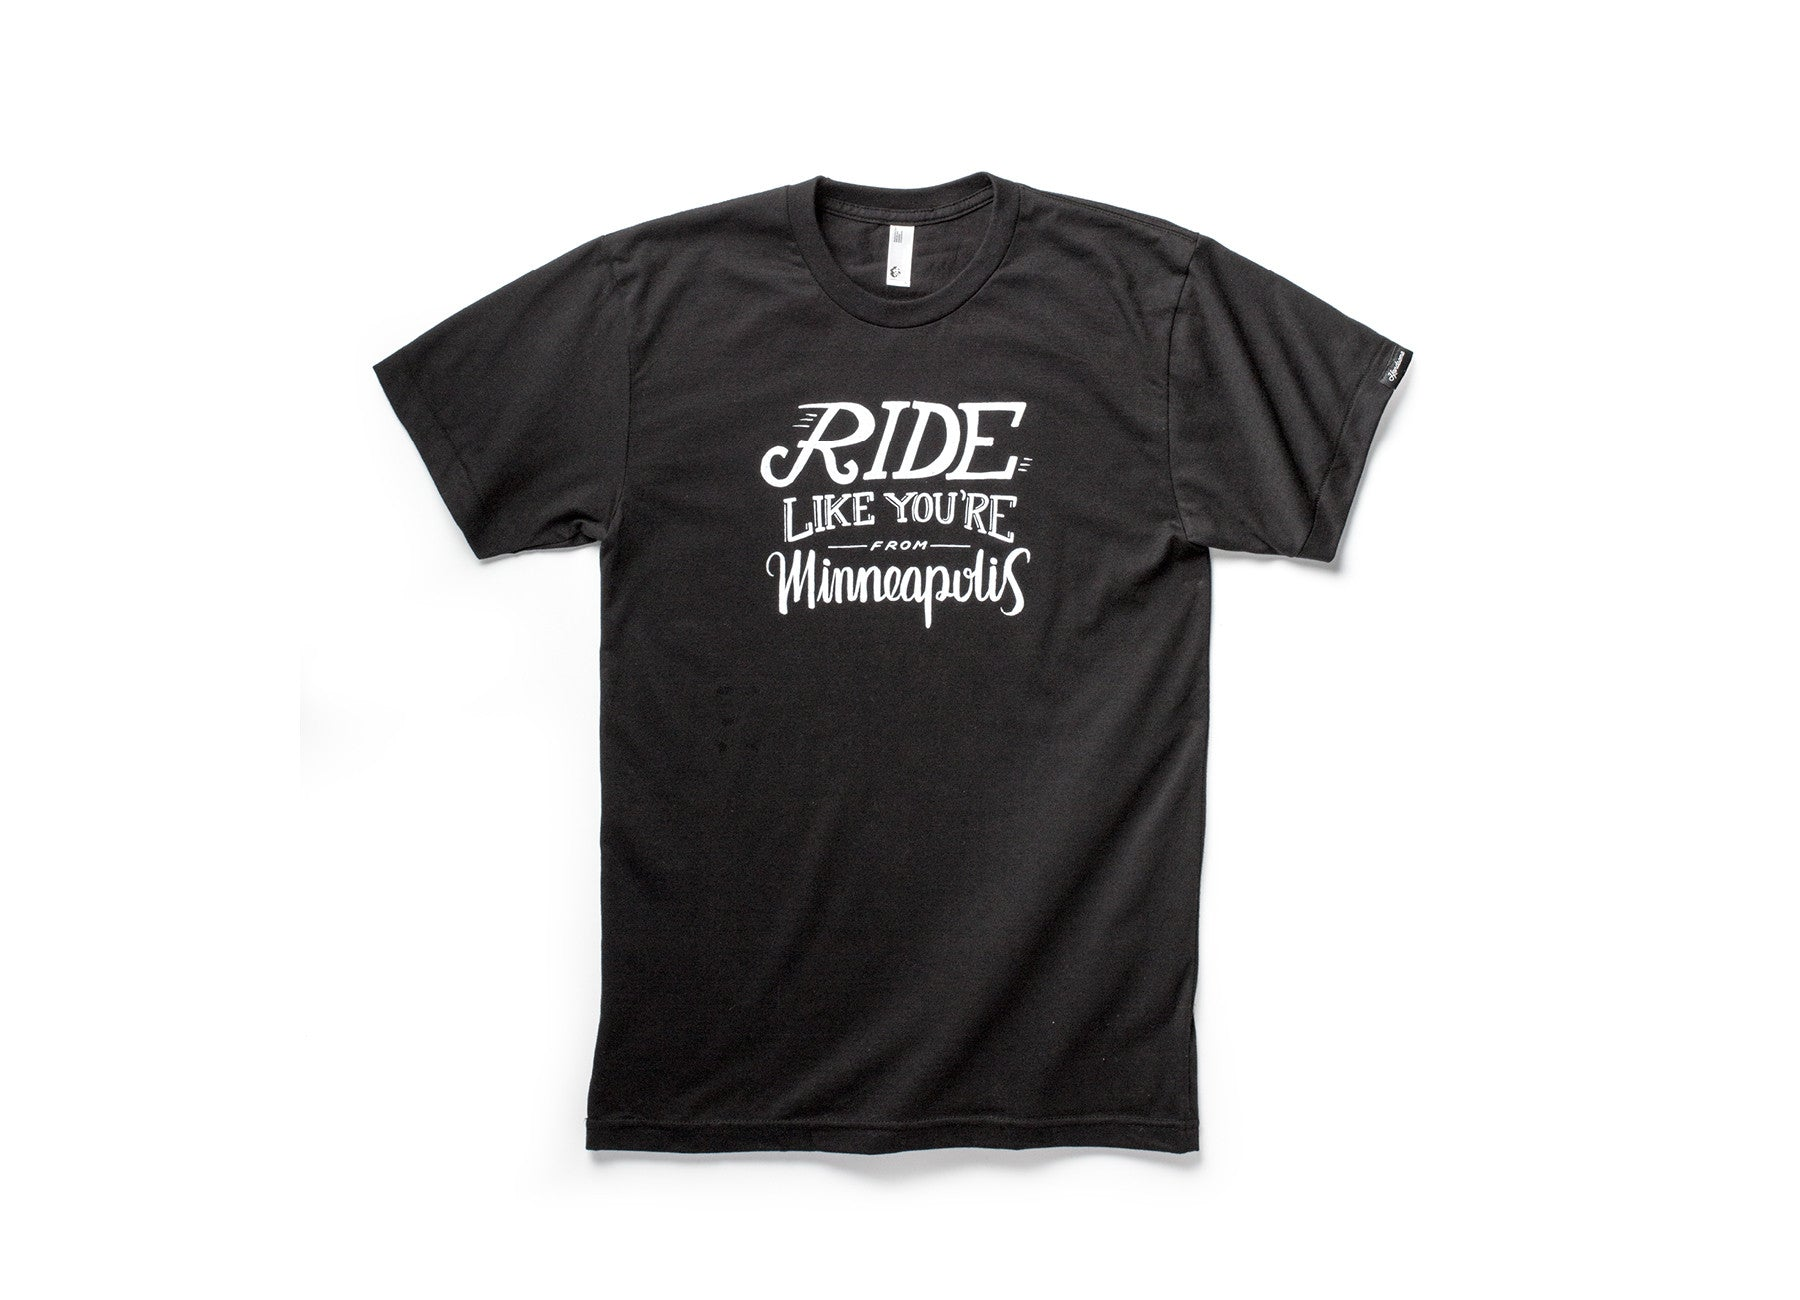 RIDE T-SHIRT WITH SLEEVE TAG